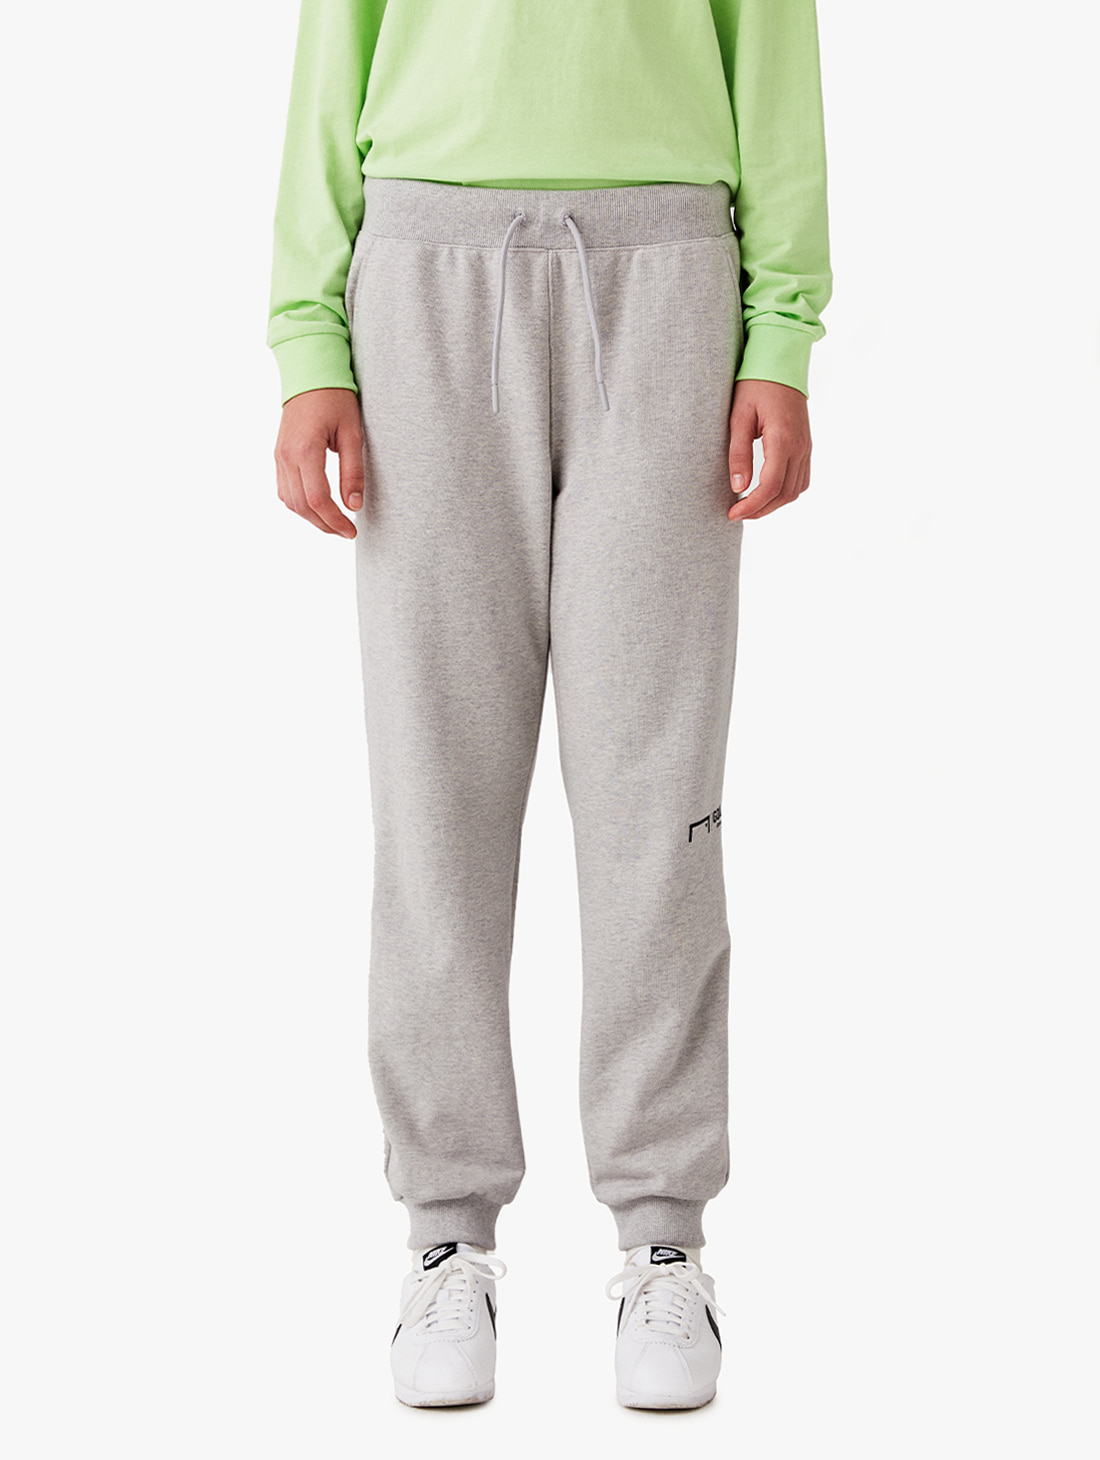 GOALSTUDIO GOAL KNIT JOGGER PANTS 2.0 (3 Colors)